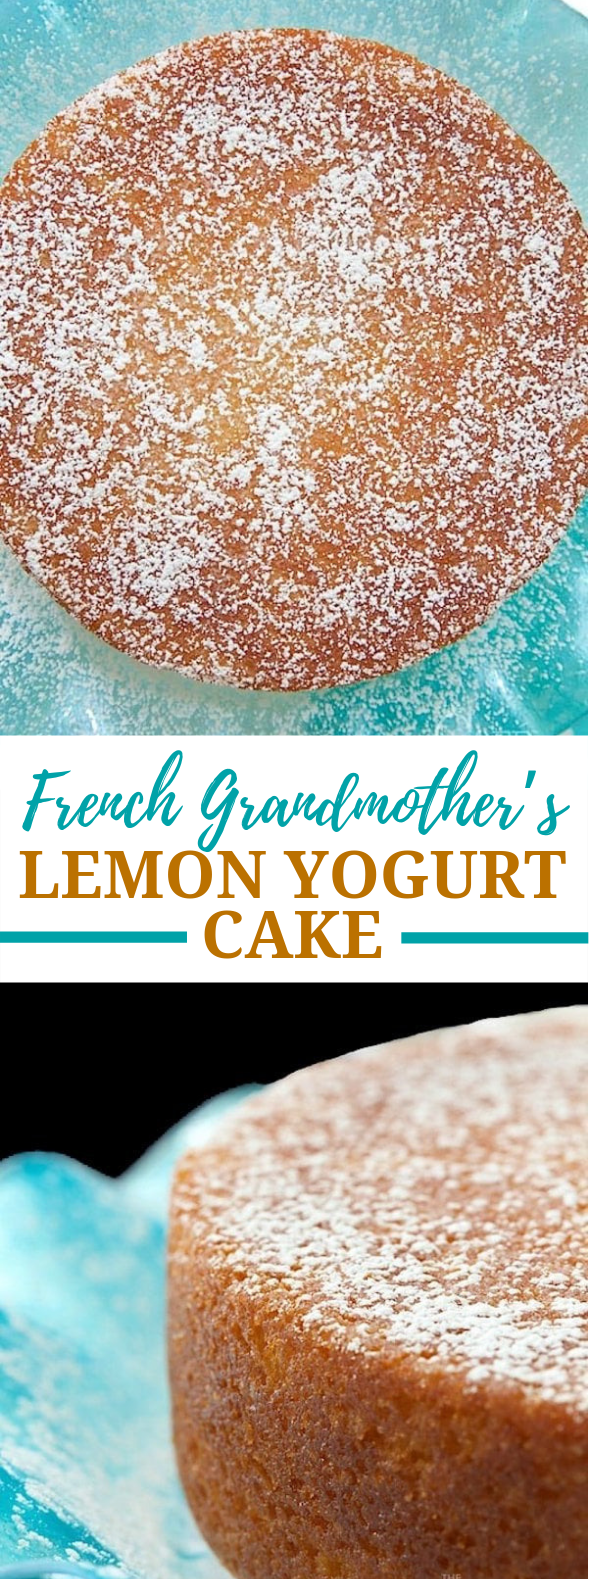 French Grandmother's Lemon Yogurt Cake #desserts #cakerecipe